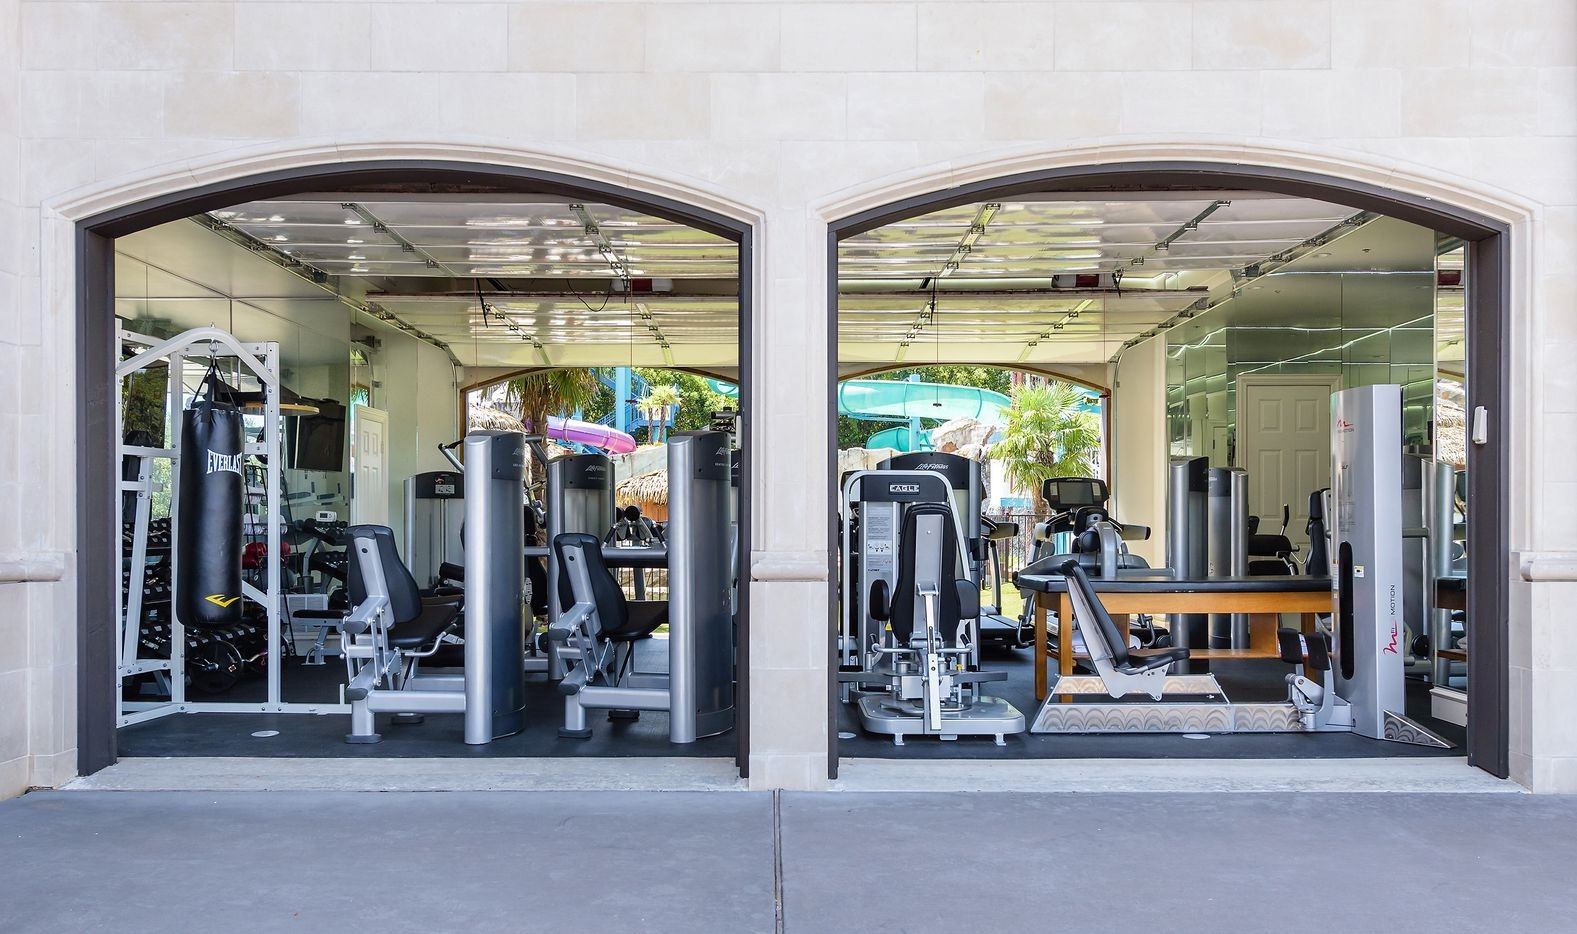 The house includes a fitness center.